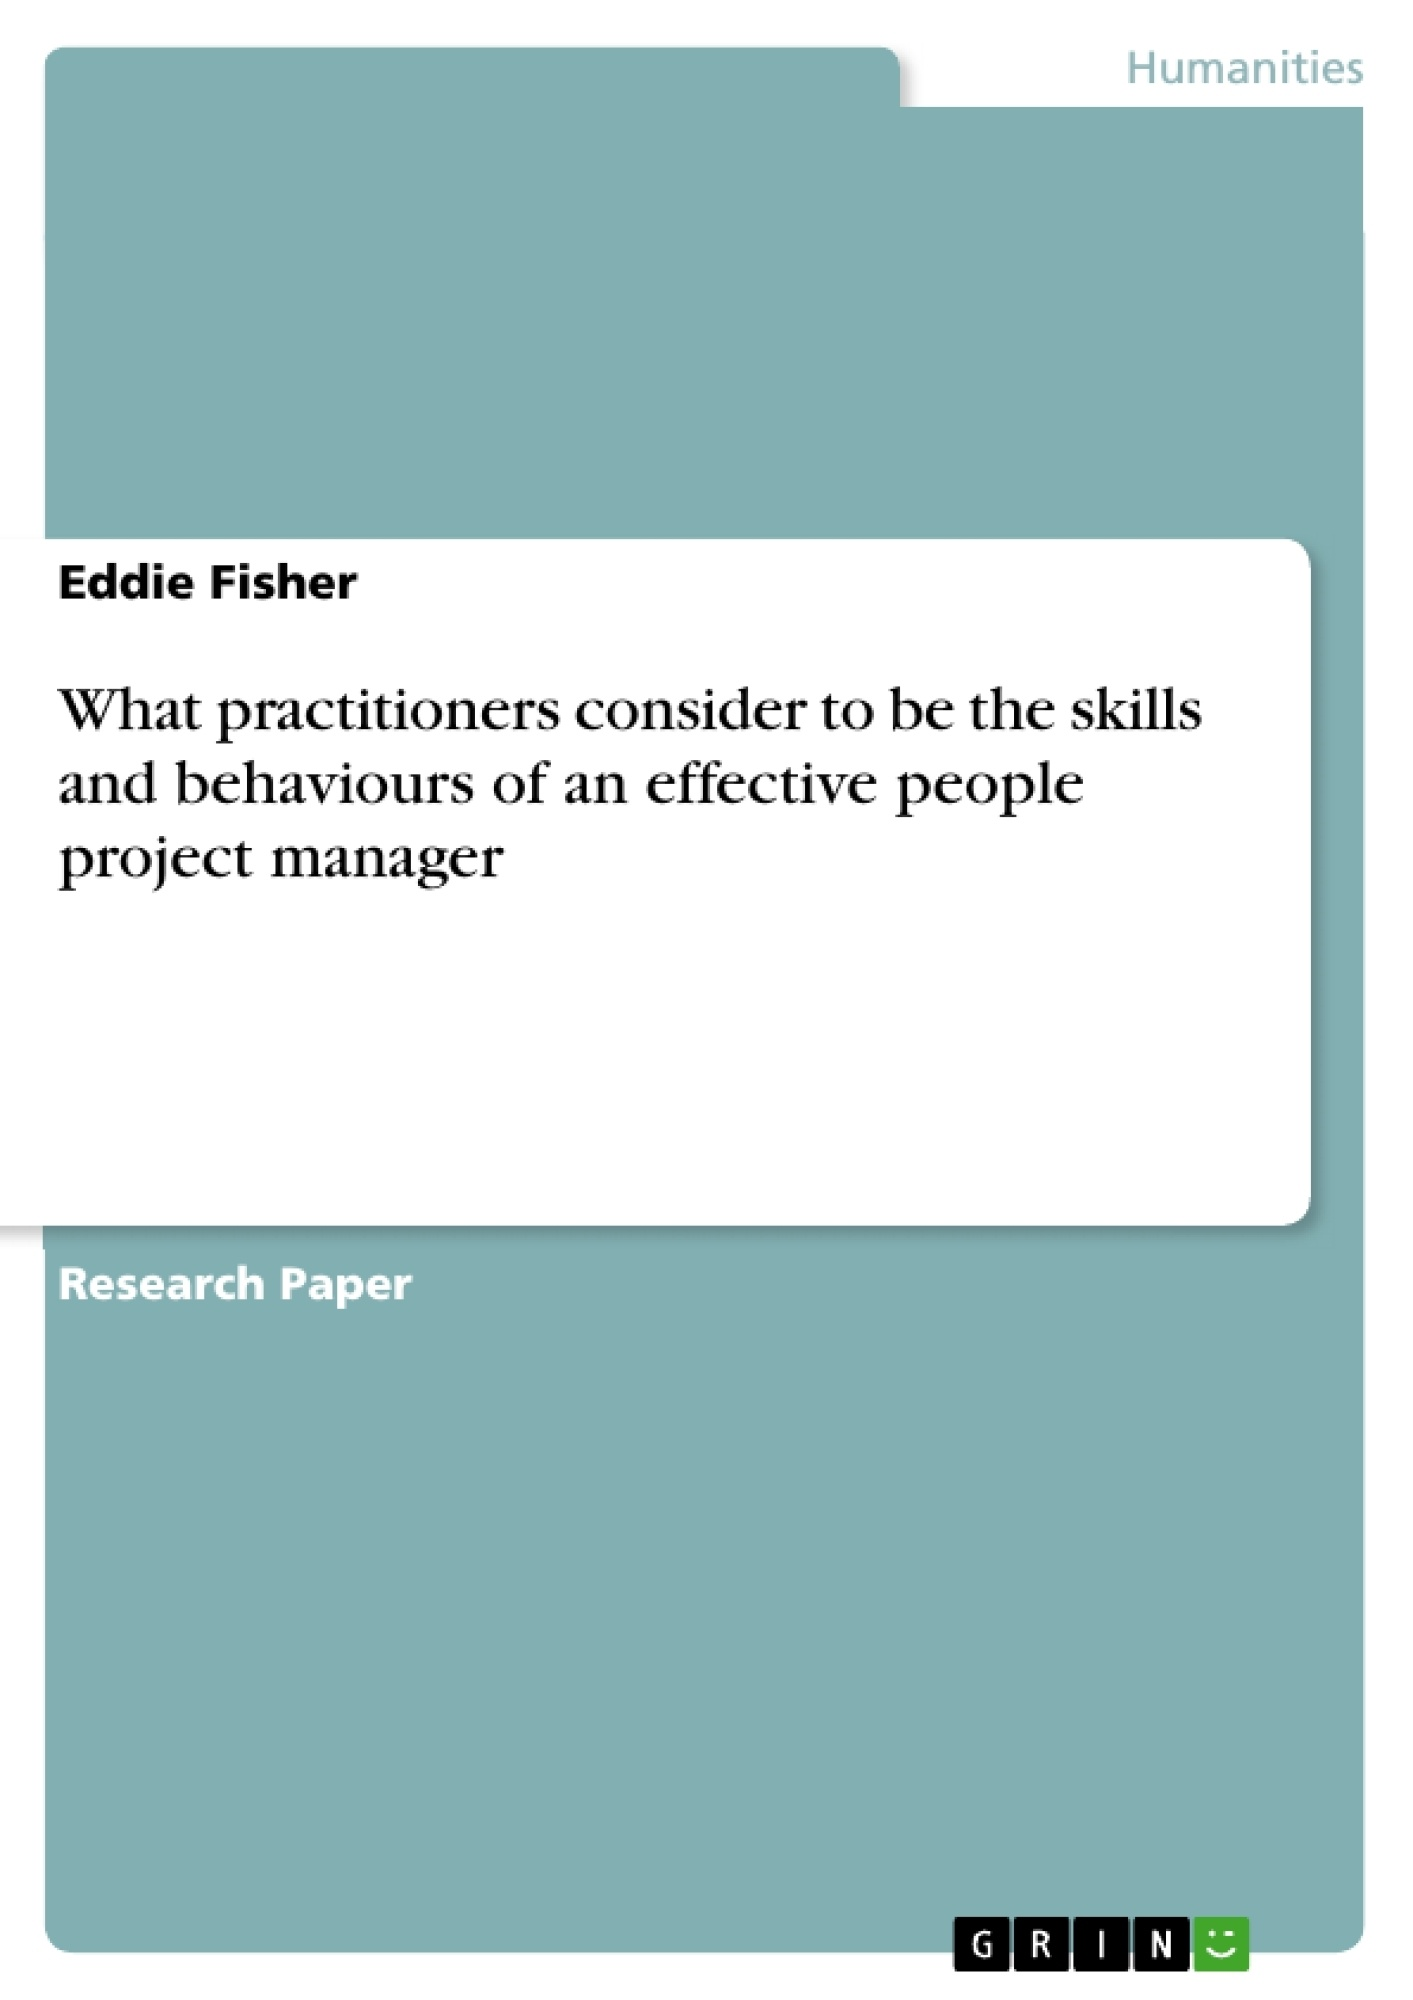 Title: What practitioners consider to be the skills and behaviours of an effective people project manager